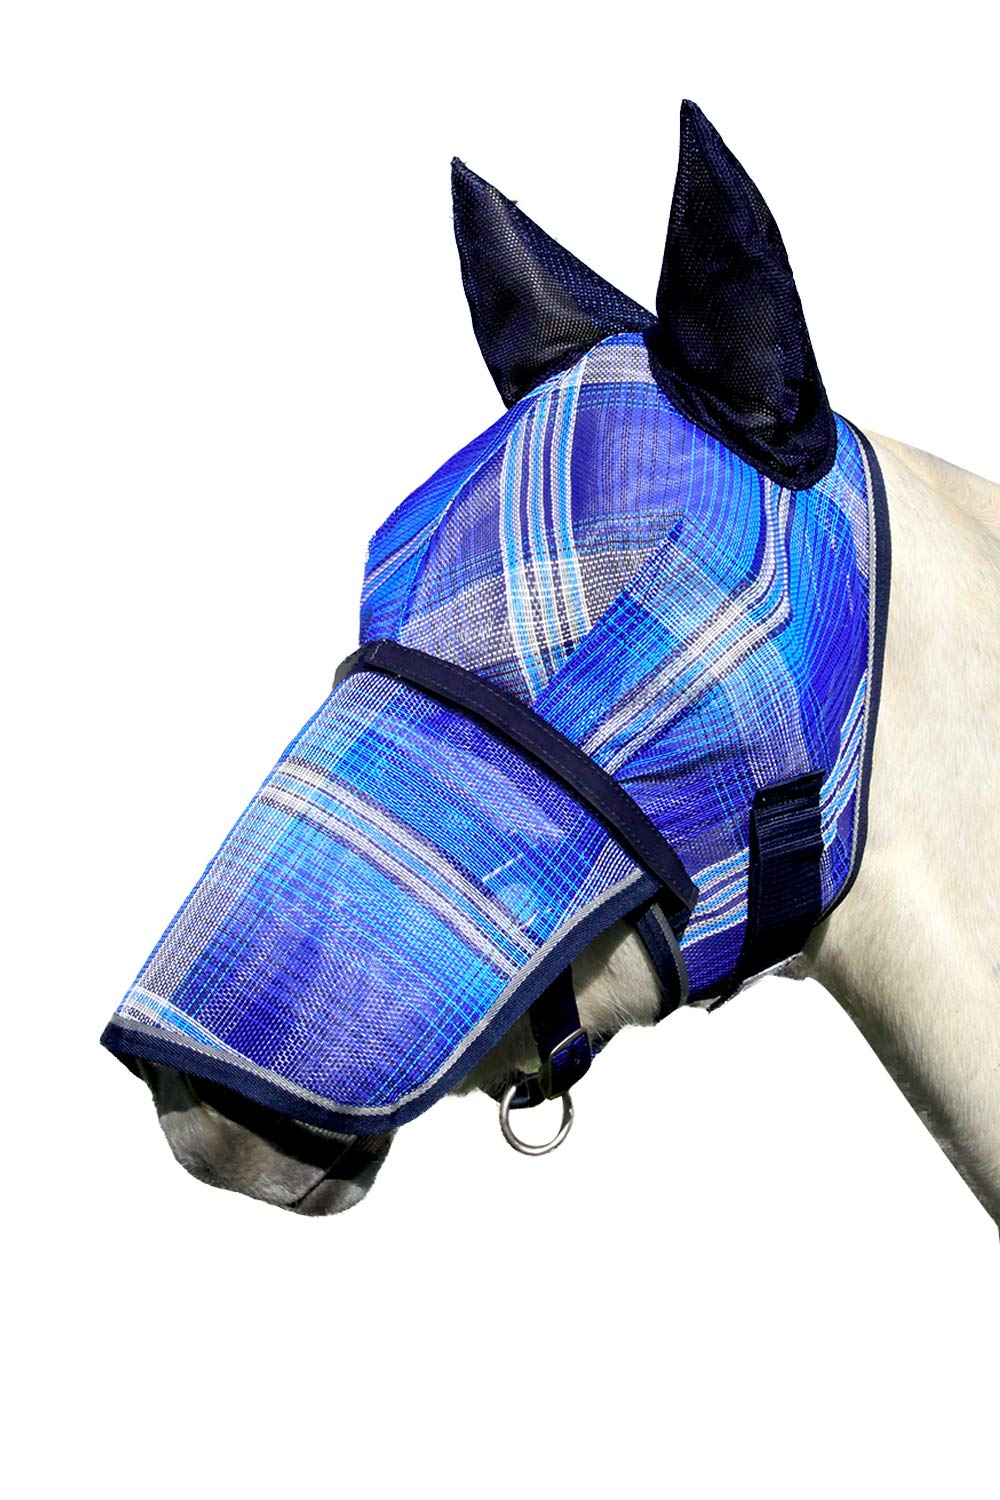 Kensington Signature Fly Mask with Removable Nose and Soft Mesh Ears - Protects Horses Face, Nose and Ears from Biting Insects and UV Rays While Allowing Full Visibility (XXL, Kentucky Blue)